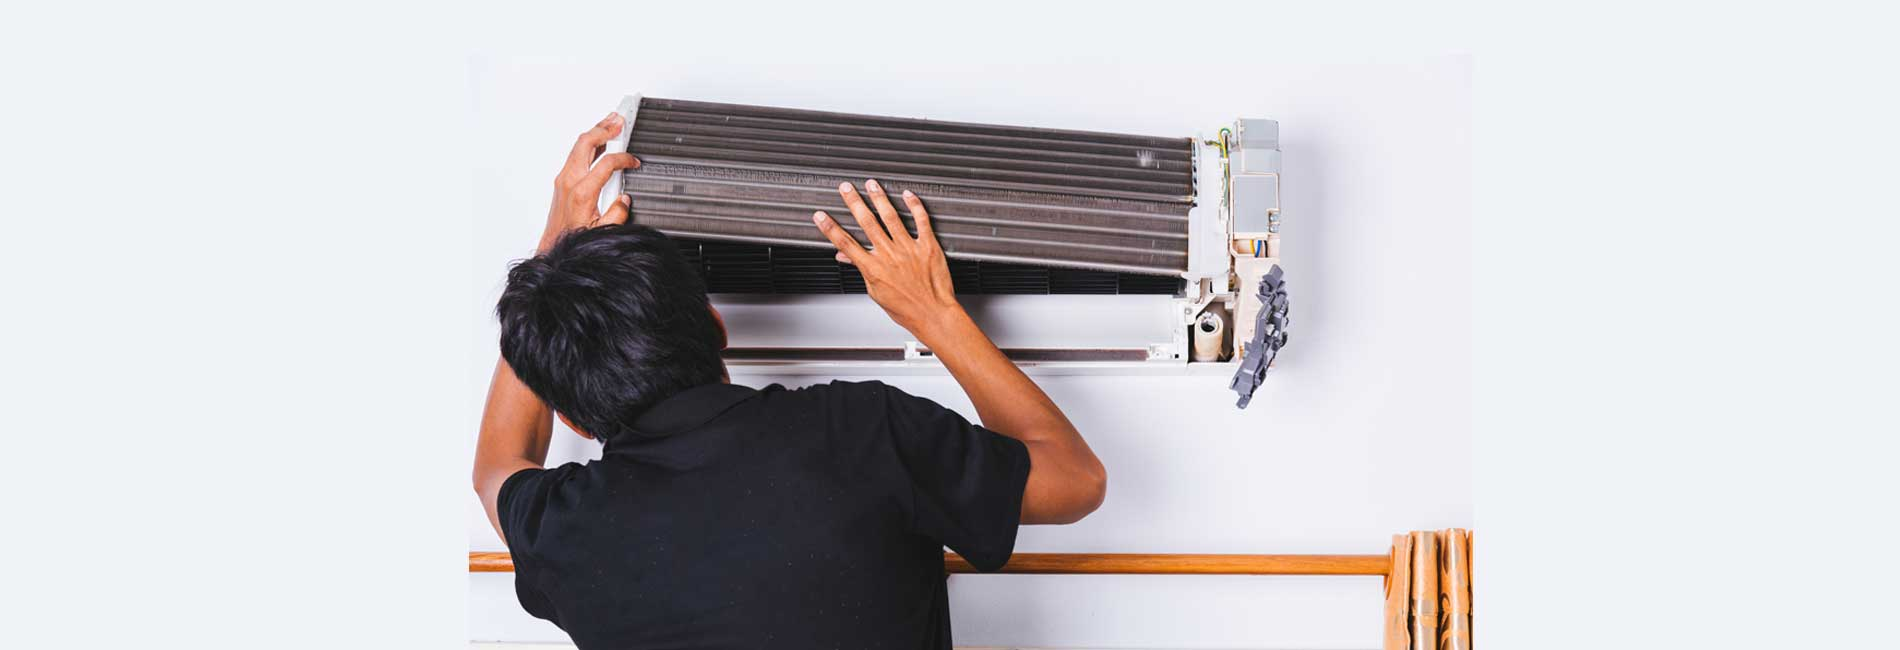 Air Conditioner Repair in Kazhipattur